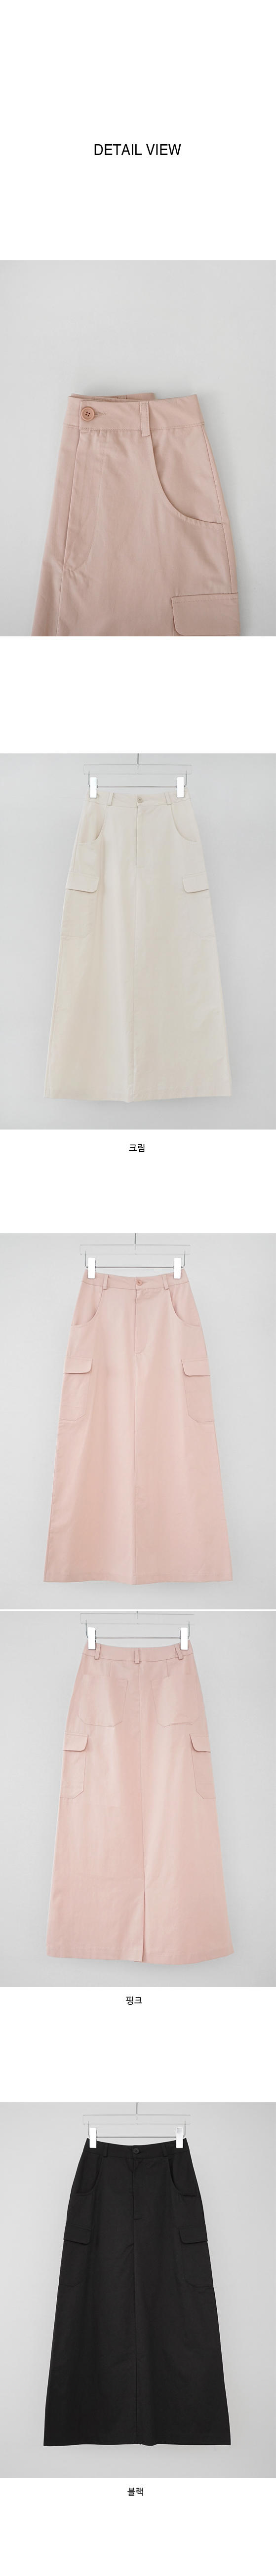 A-line out pocket skirt